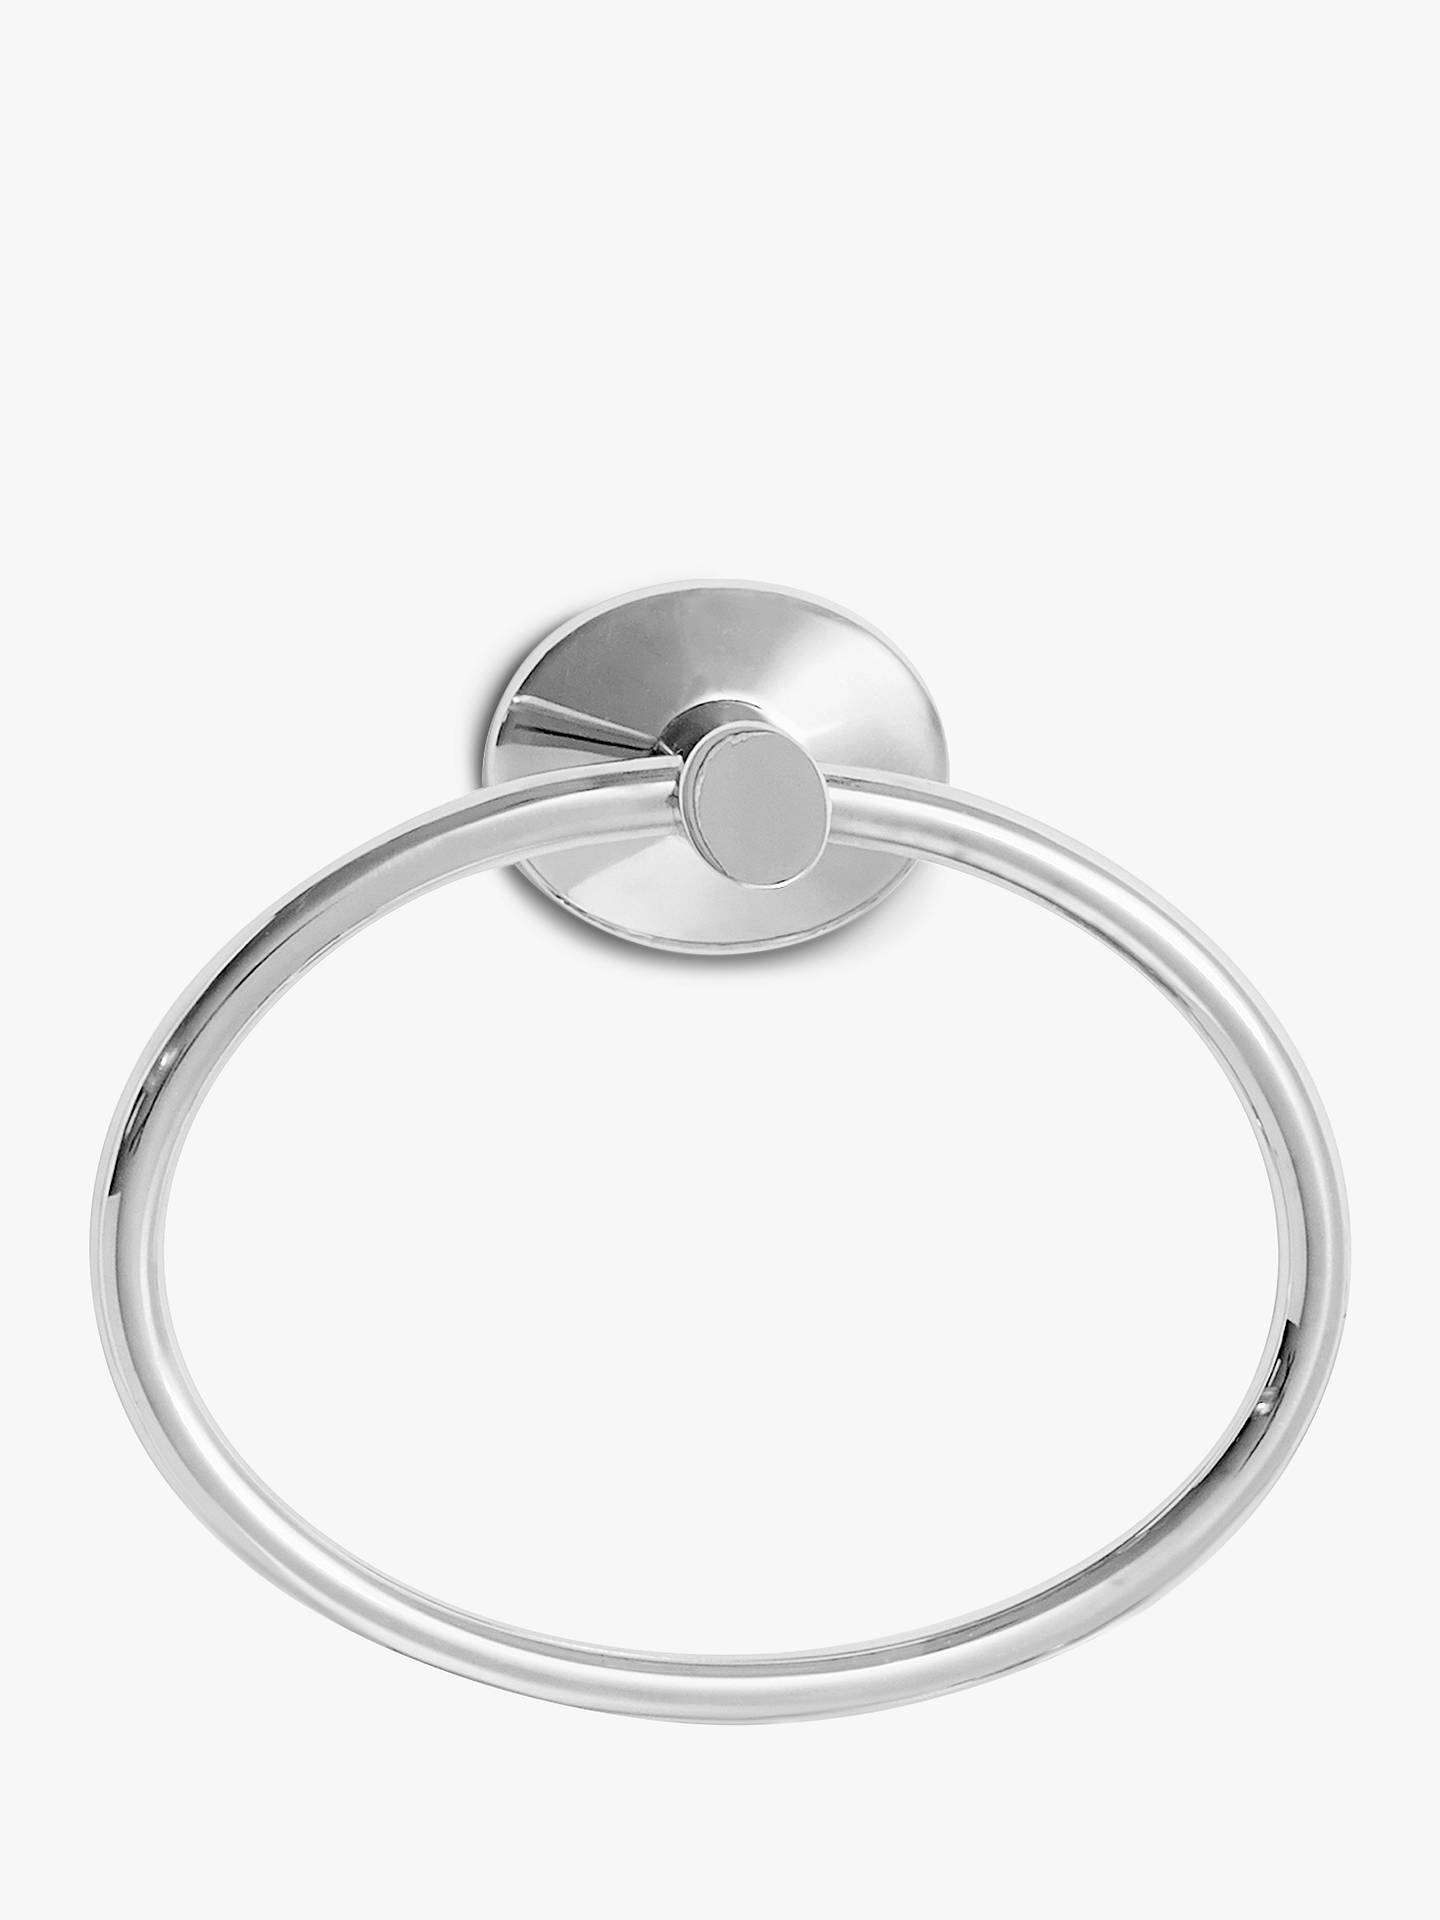 Buy Robert Welch Oblique Towel Ring Online at johnlewis.com